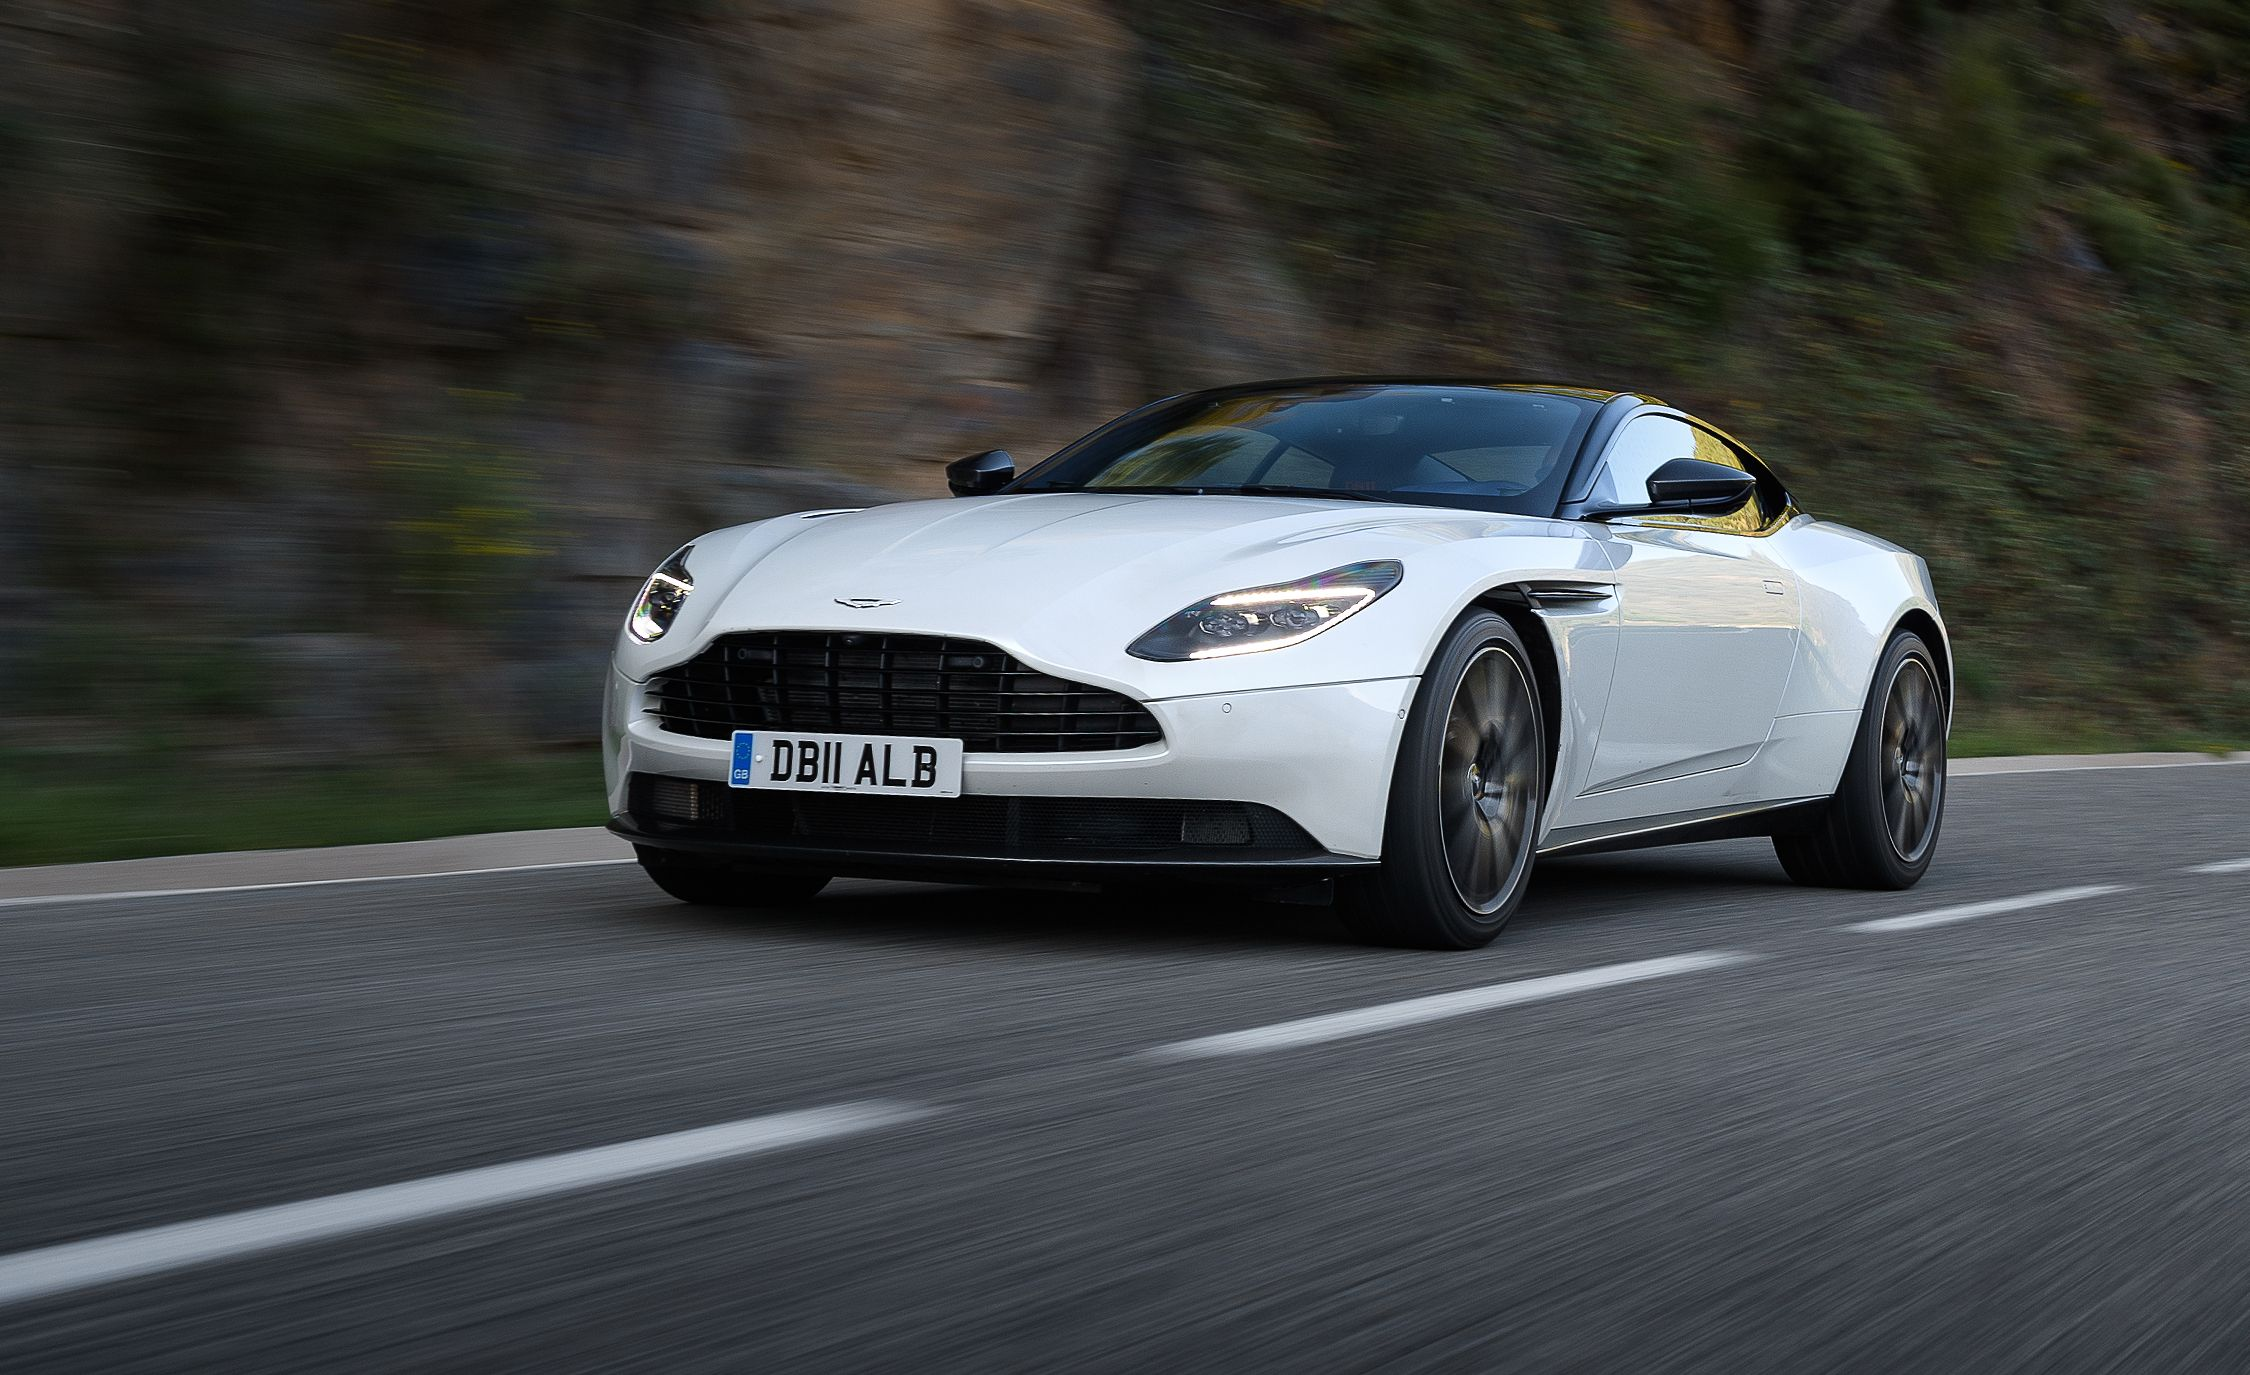 Bmw Used For Sale >> 2018 Aston Martin DB11 V-8 First Drive | Review | Car and Driver